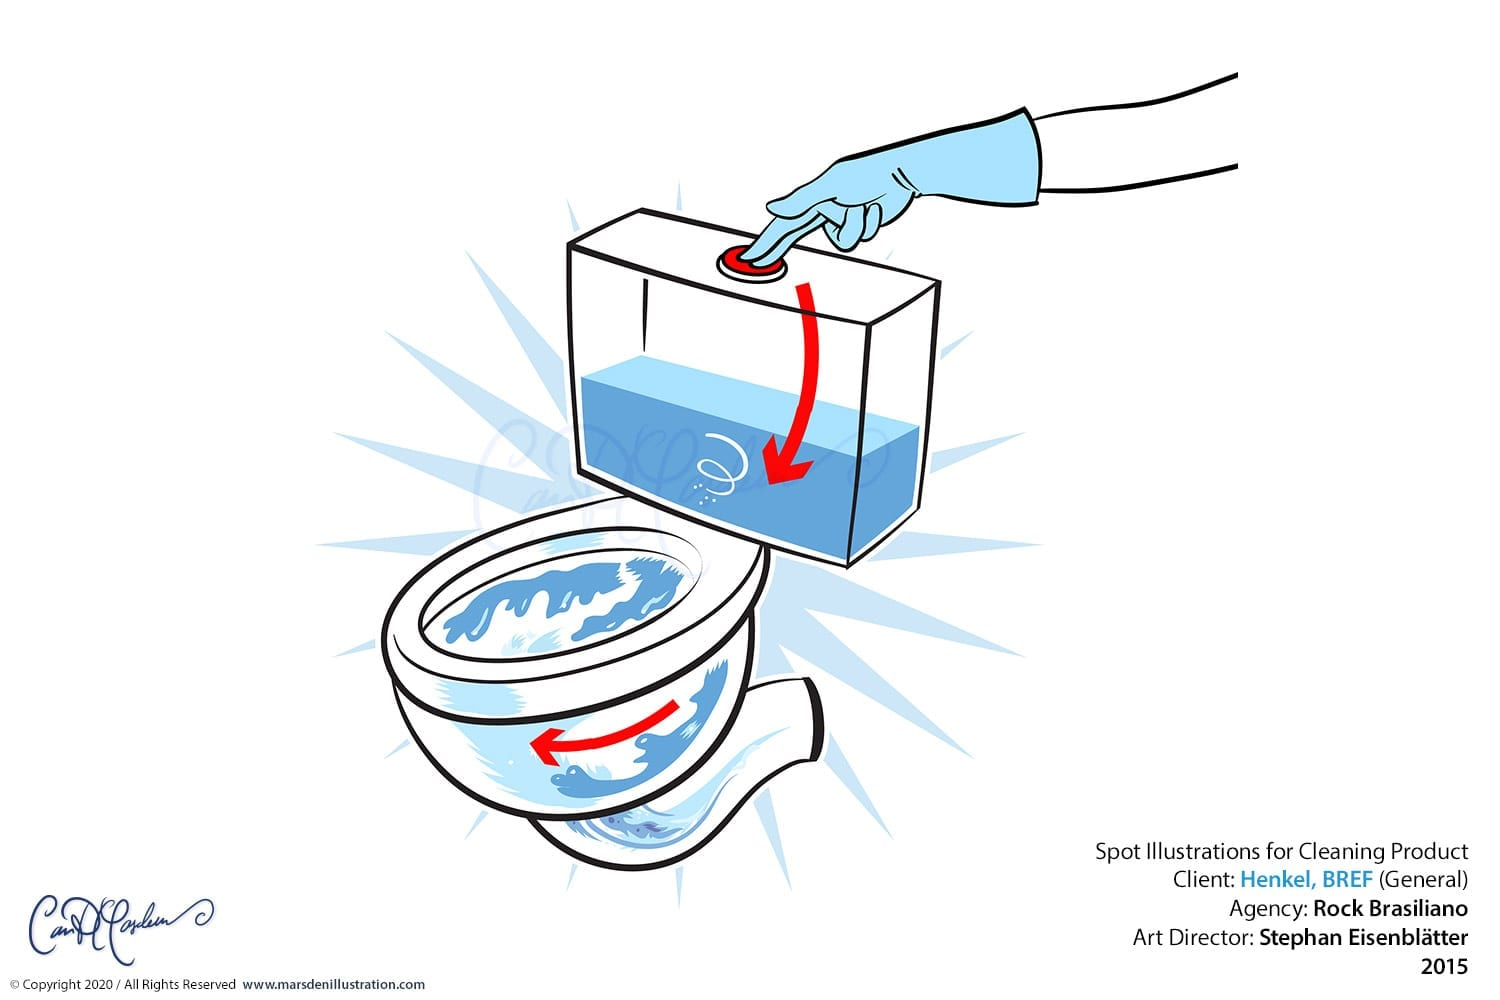 Illustrations to explain use and effects of Henkel Cleaning Products